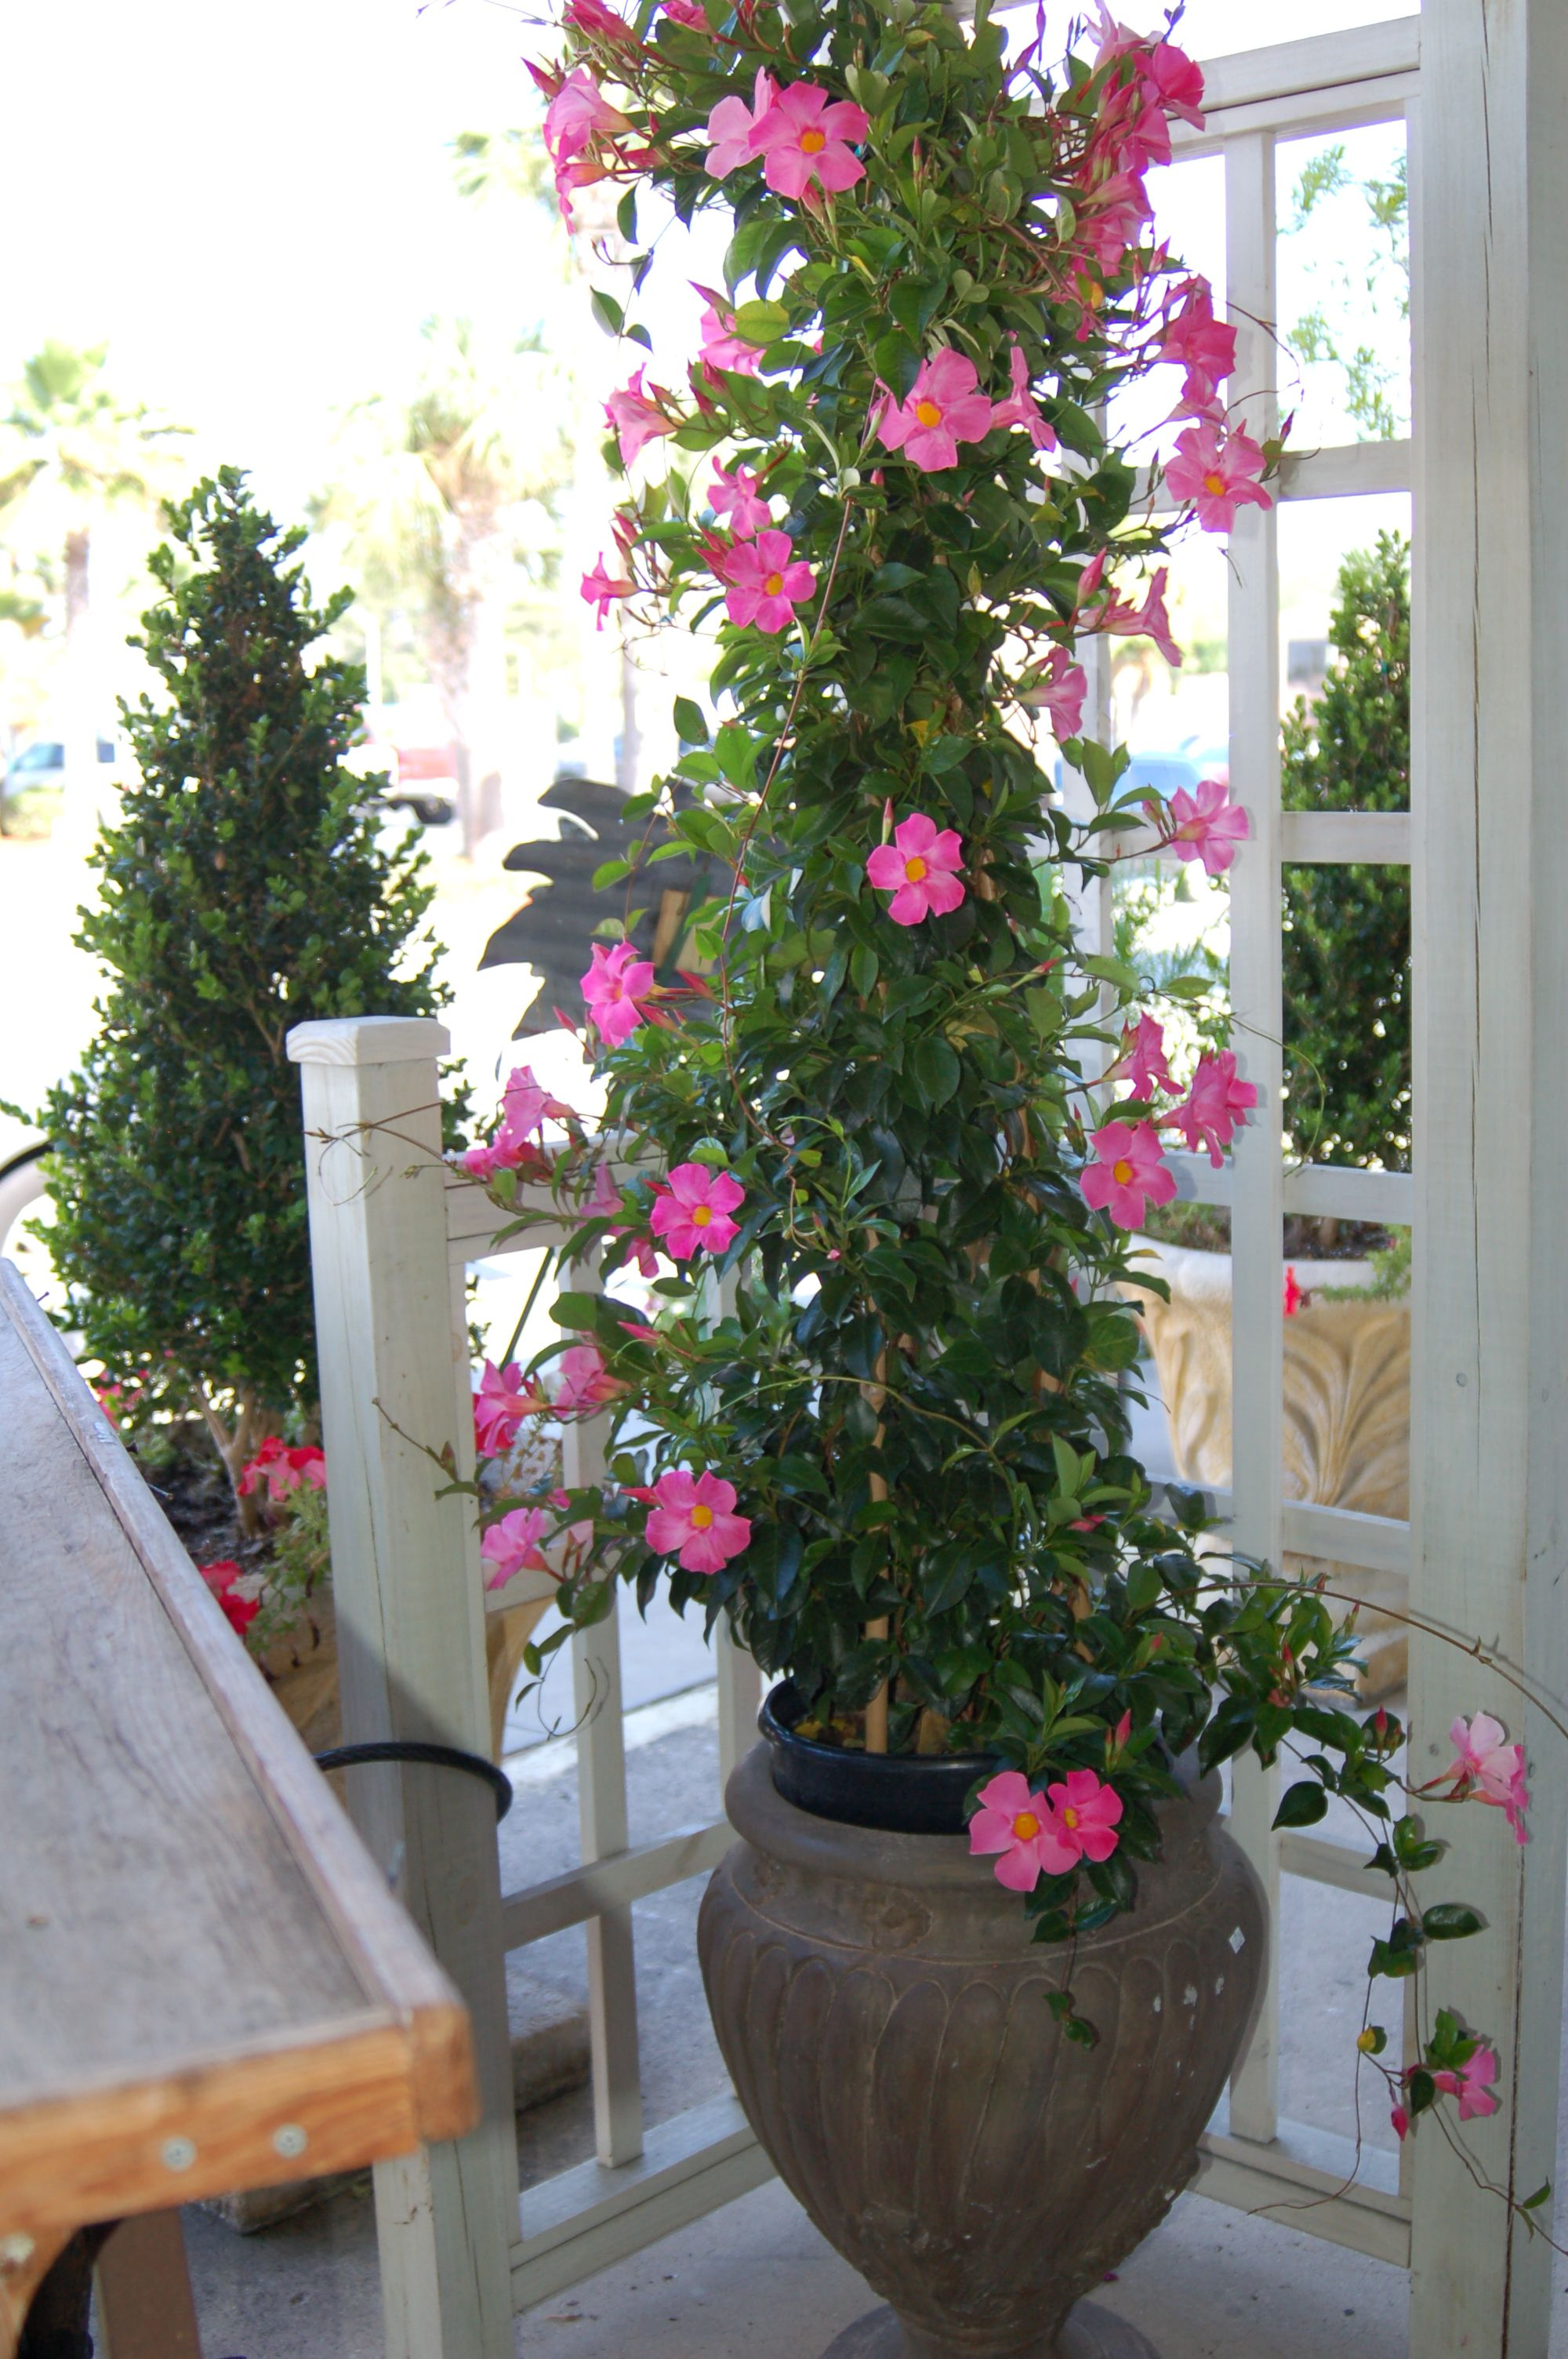 House Plants Vines mandevilla vines. those are so beautiful. i would love to plant